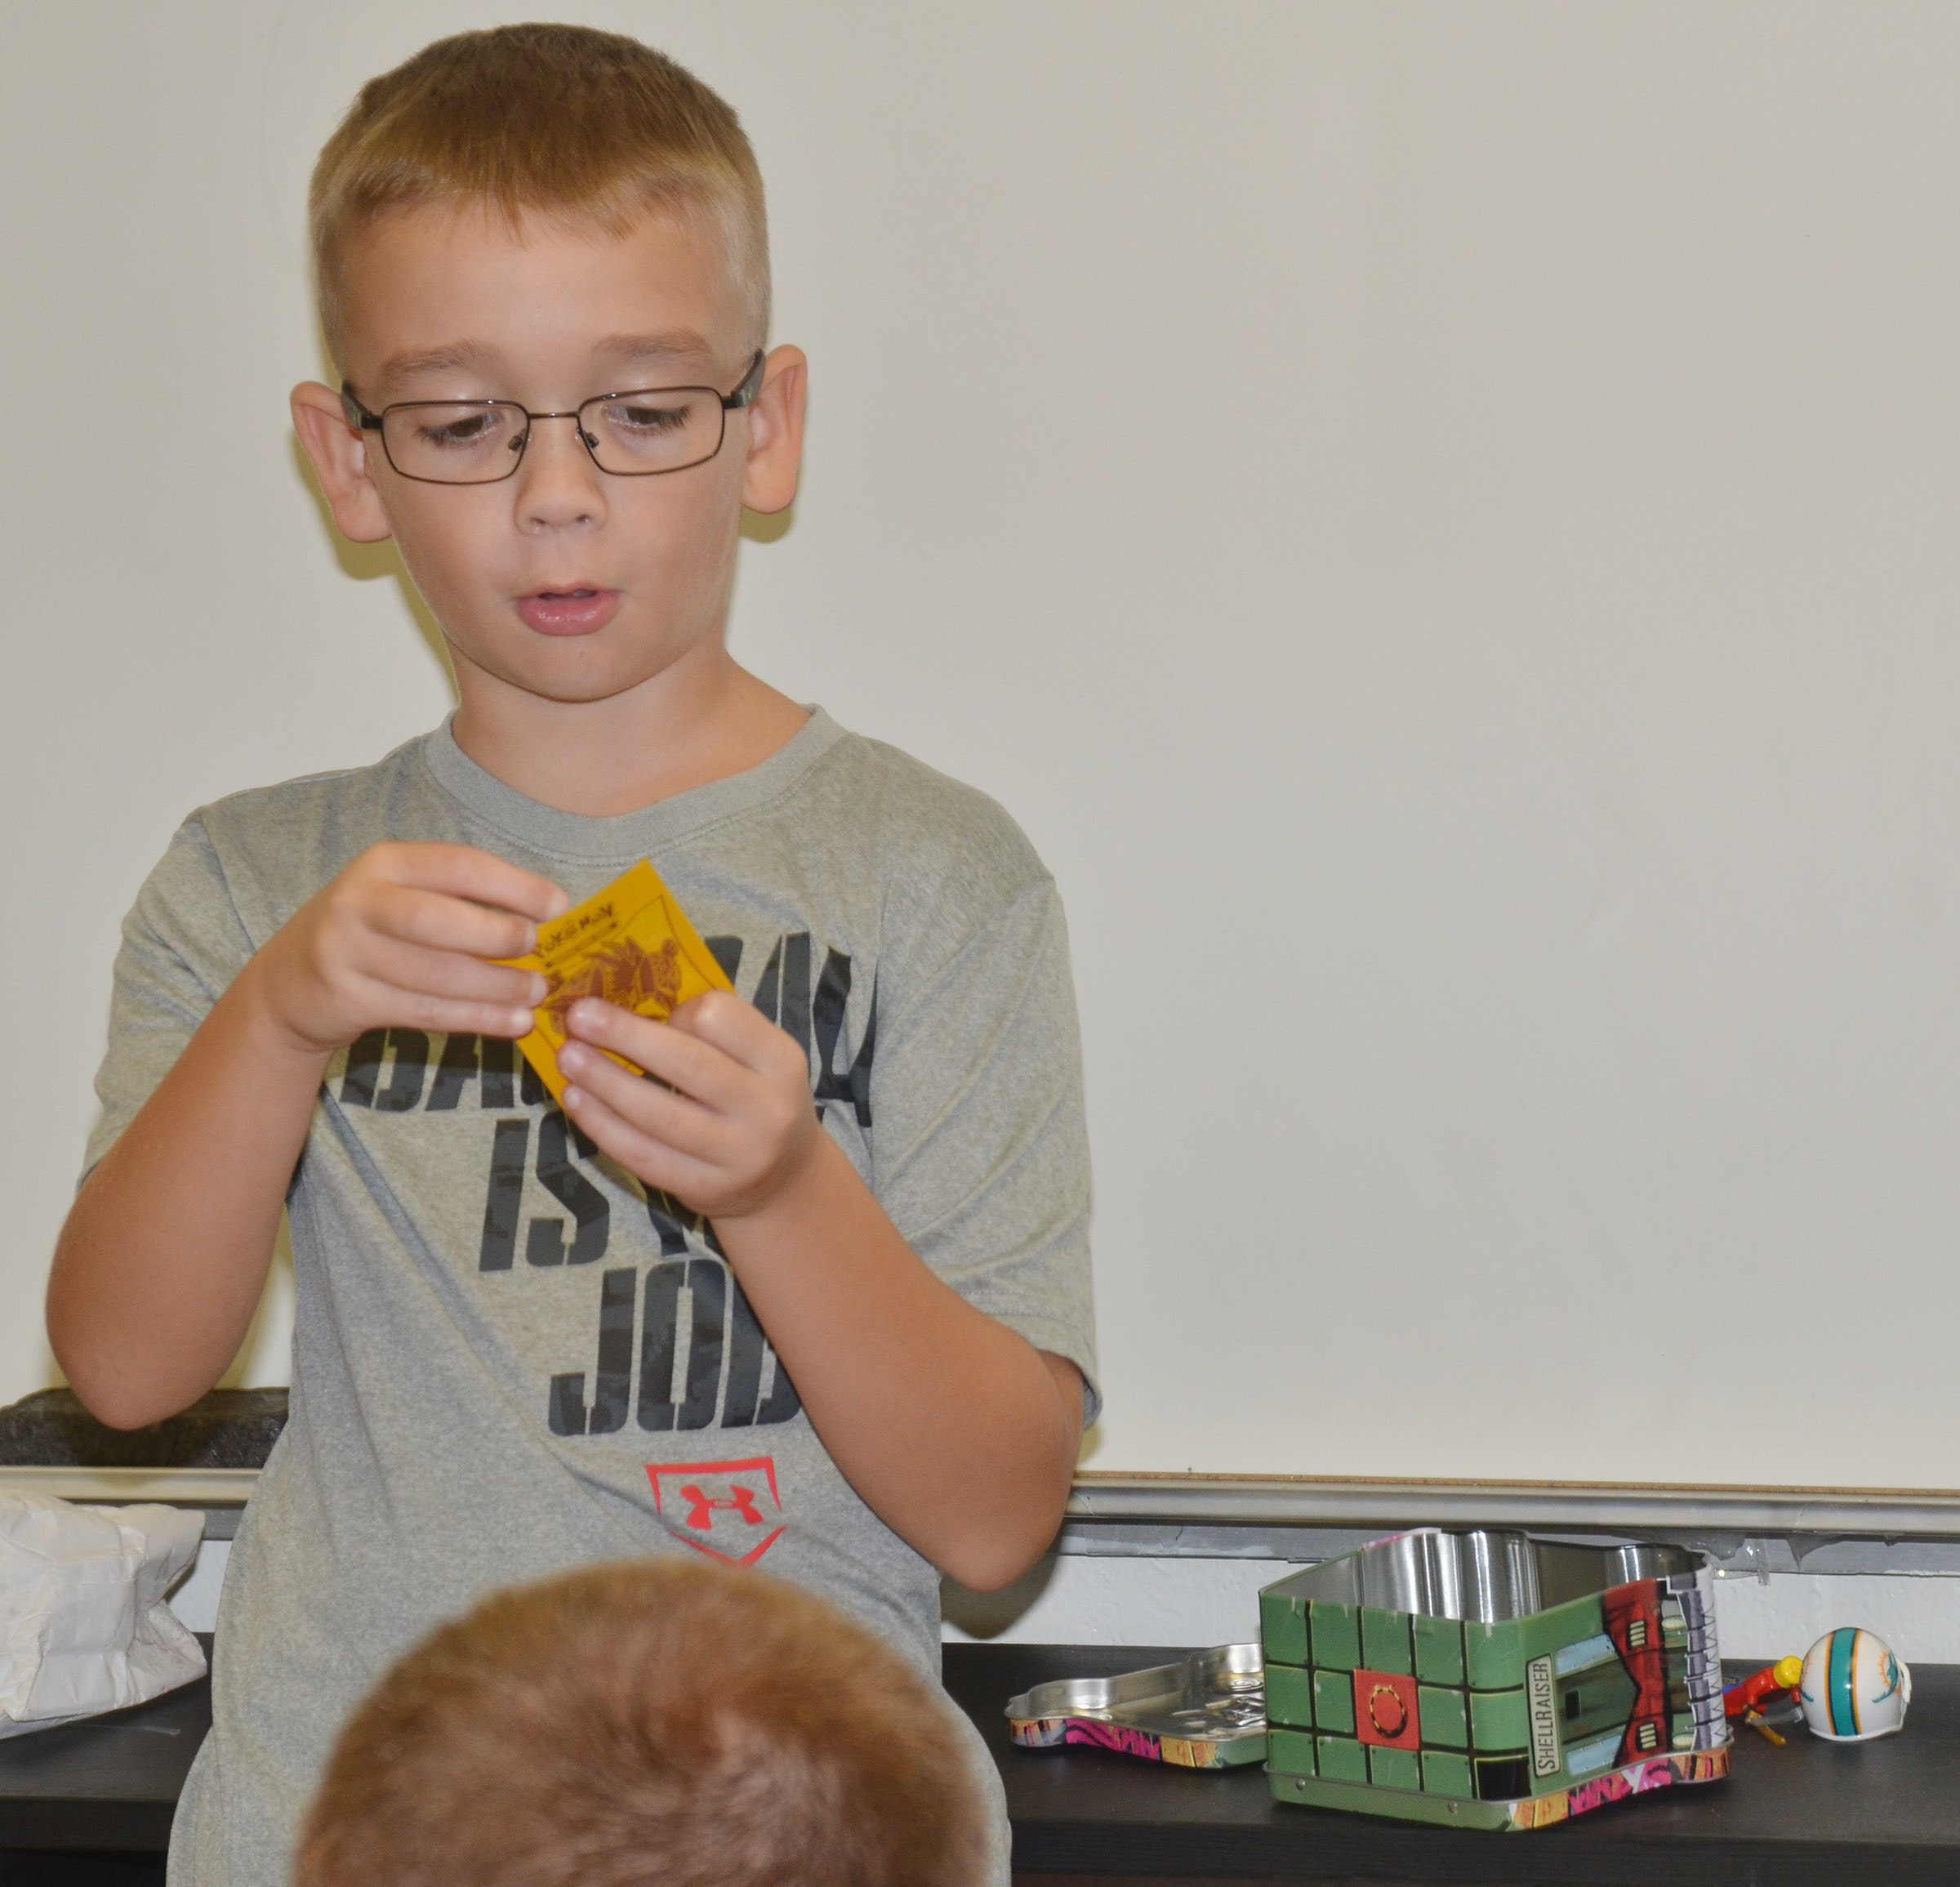 CES fourth-grader Cameron Estes says he loves Pokemon cards.